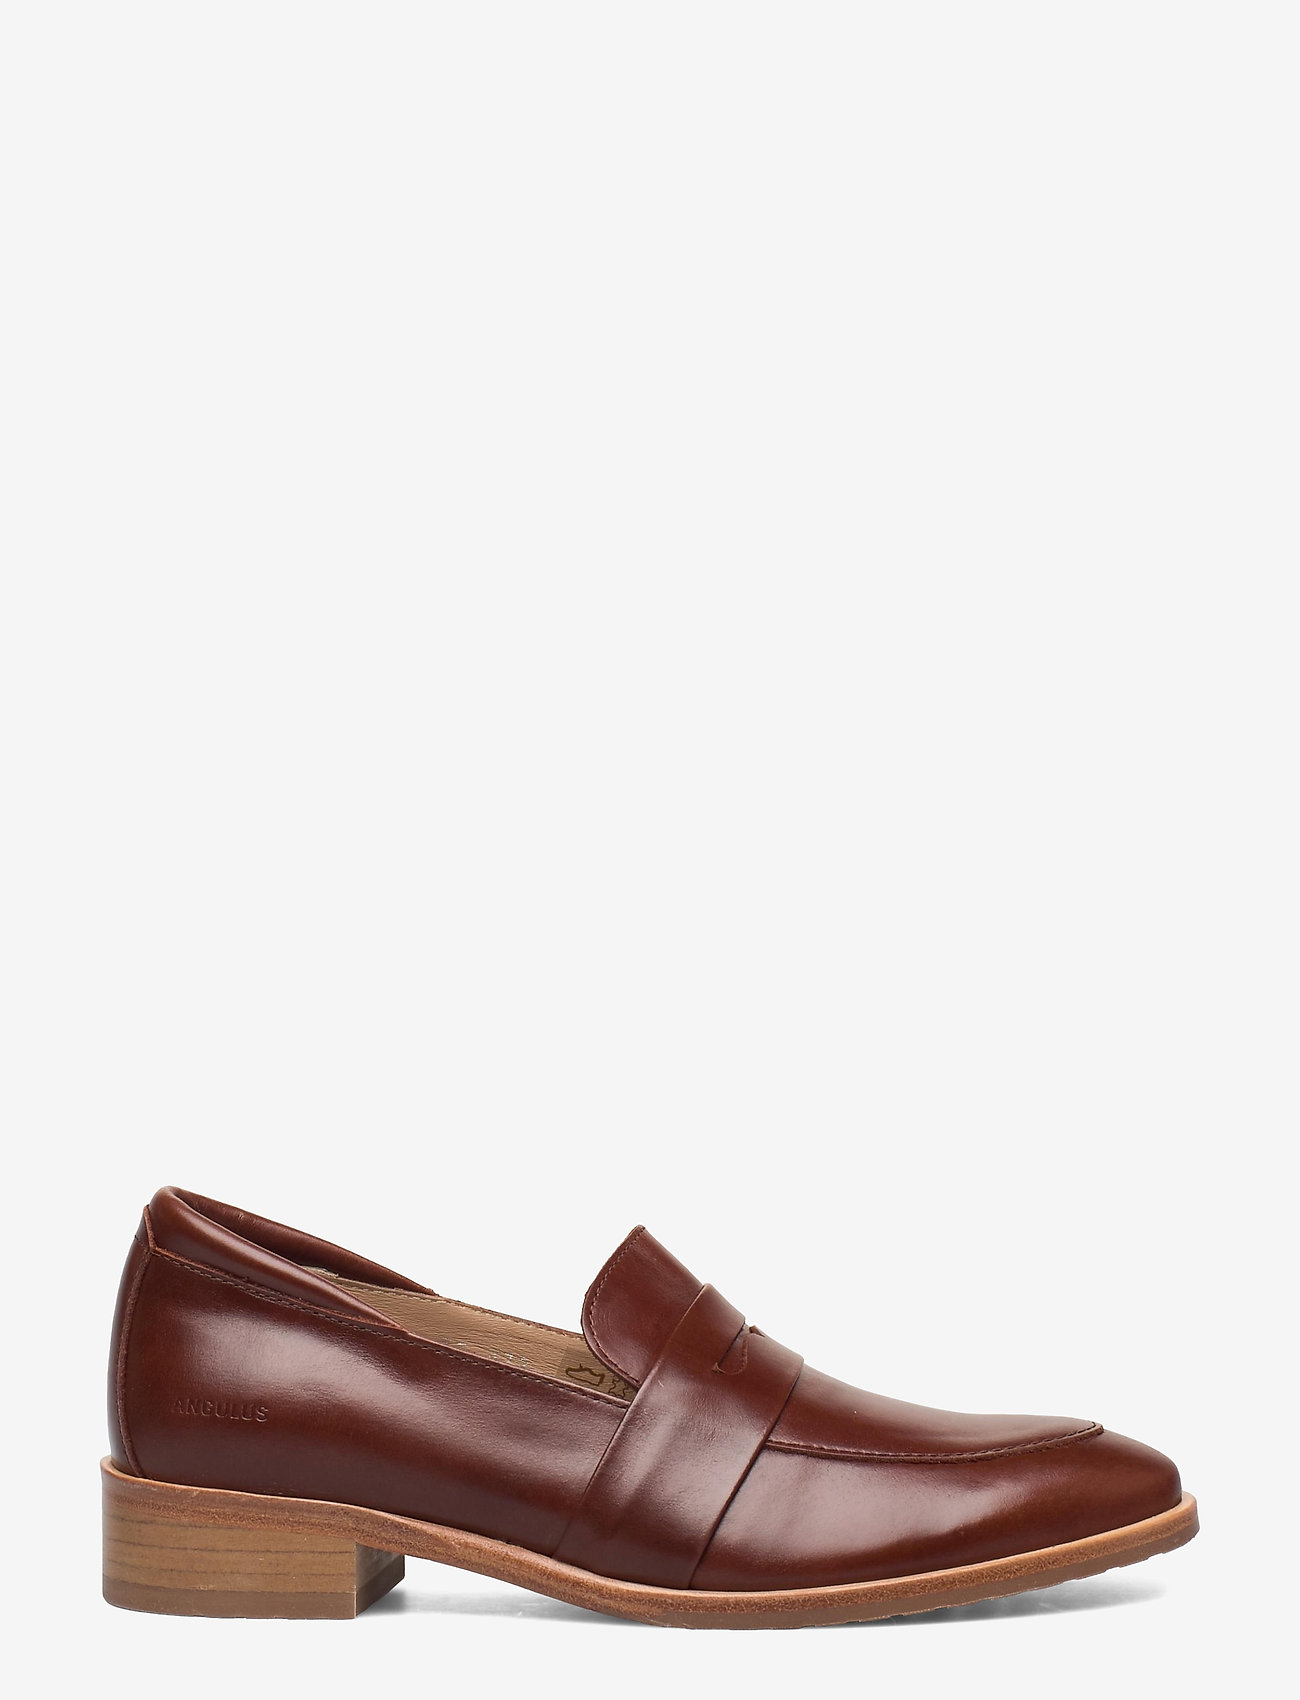 ANGULUS - Loafer - flat - loafers - 1837 brown - 1